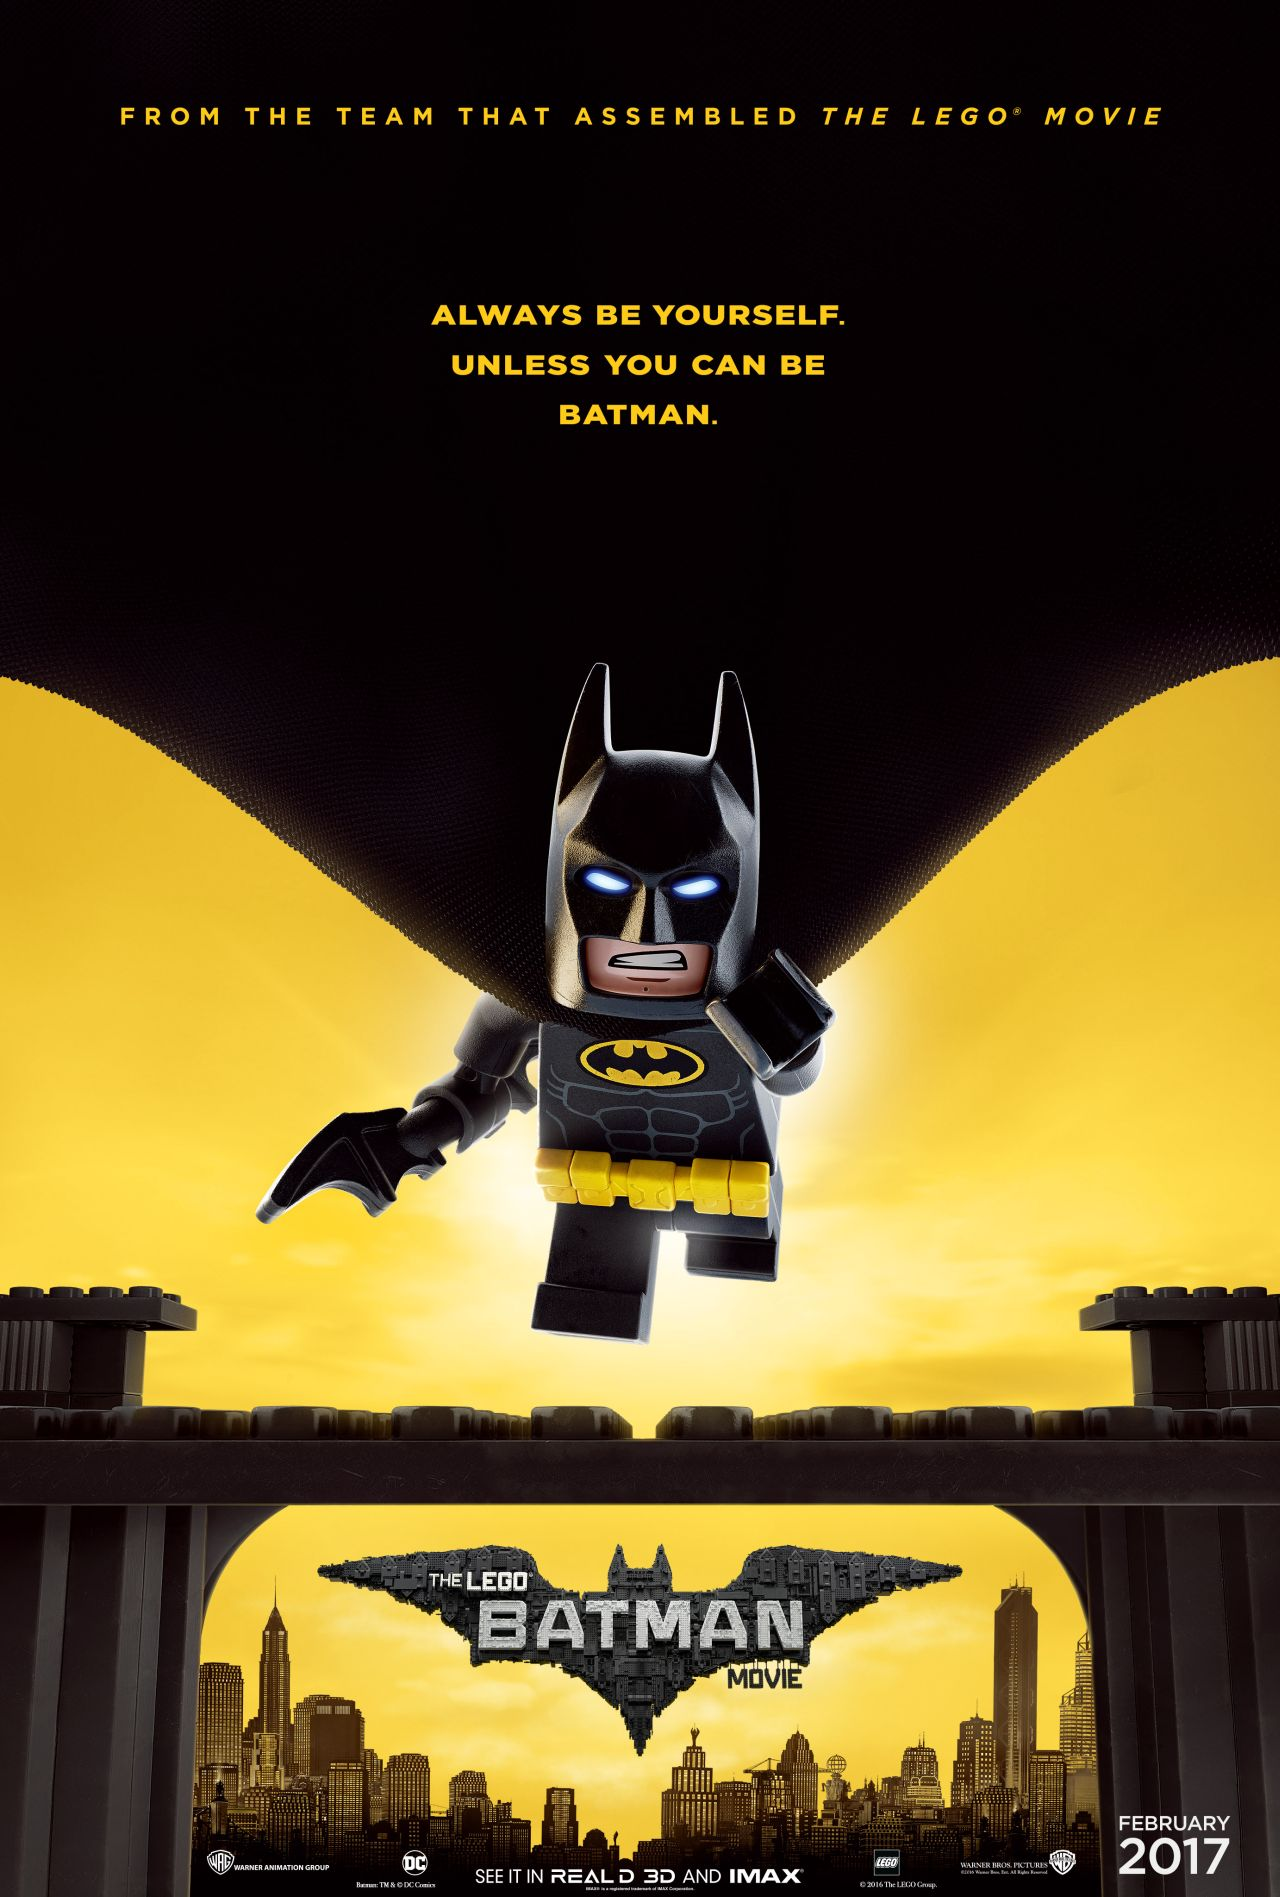 Robin Goes In For A Hug In New LEGO Batman Movie Promo